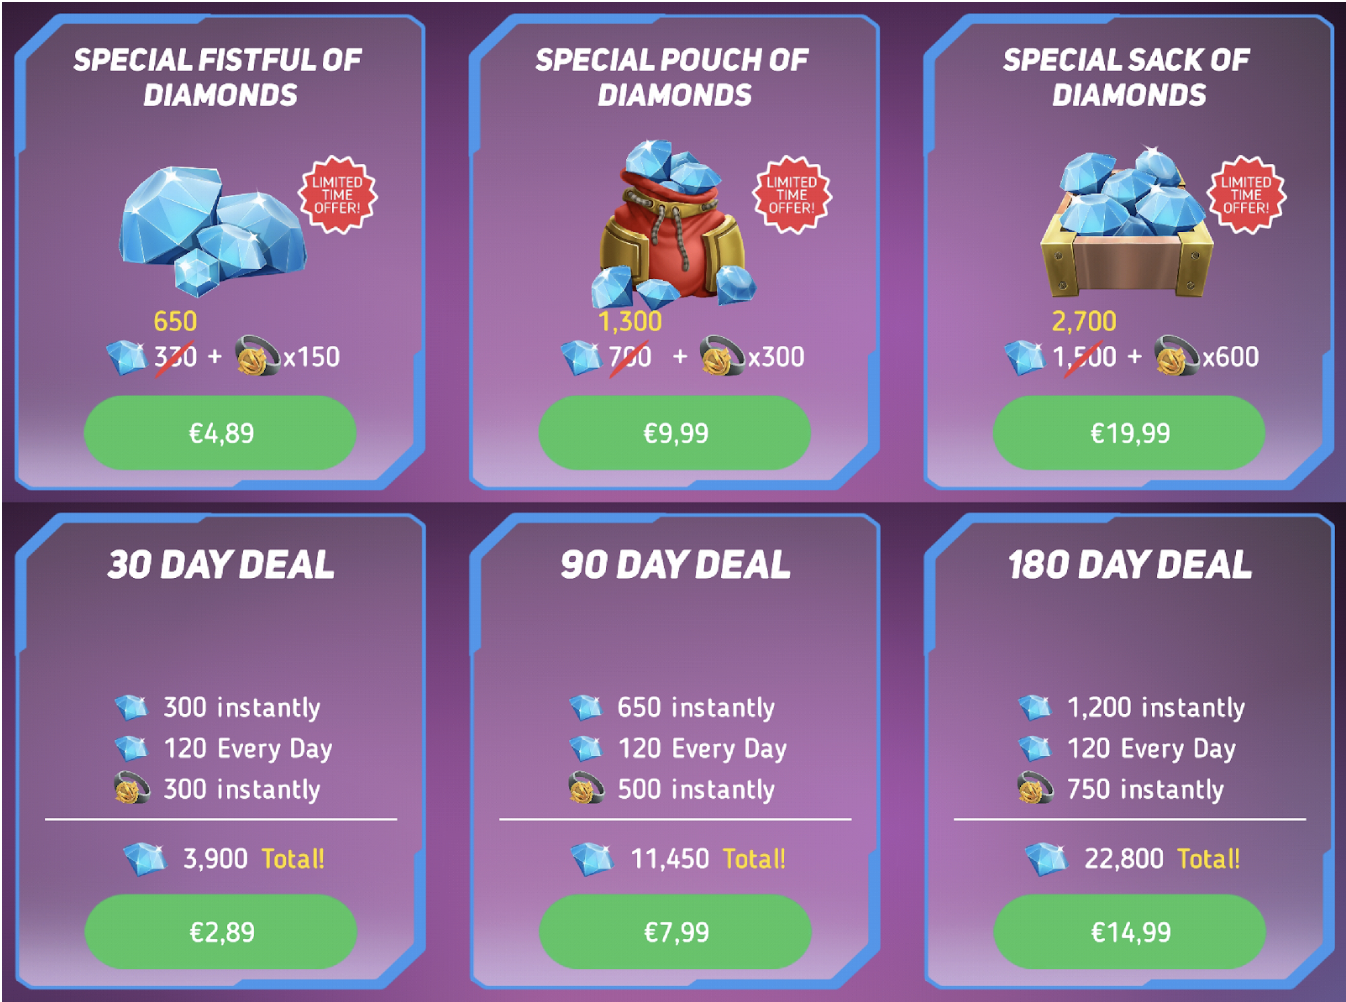 The first 3 packs of the one-off and subscription sales